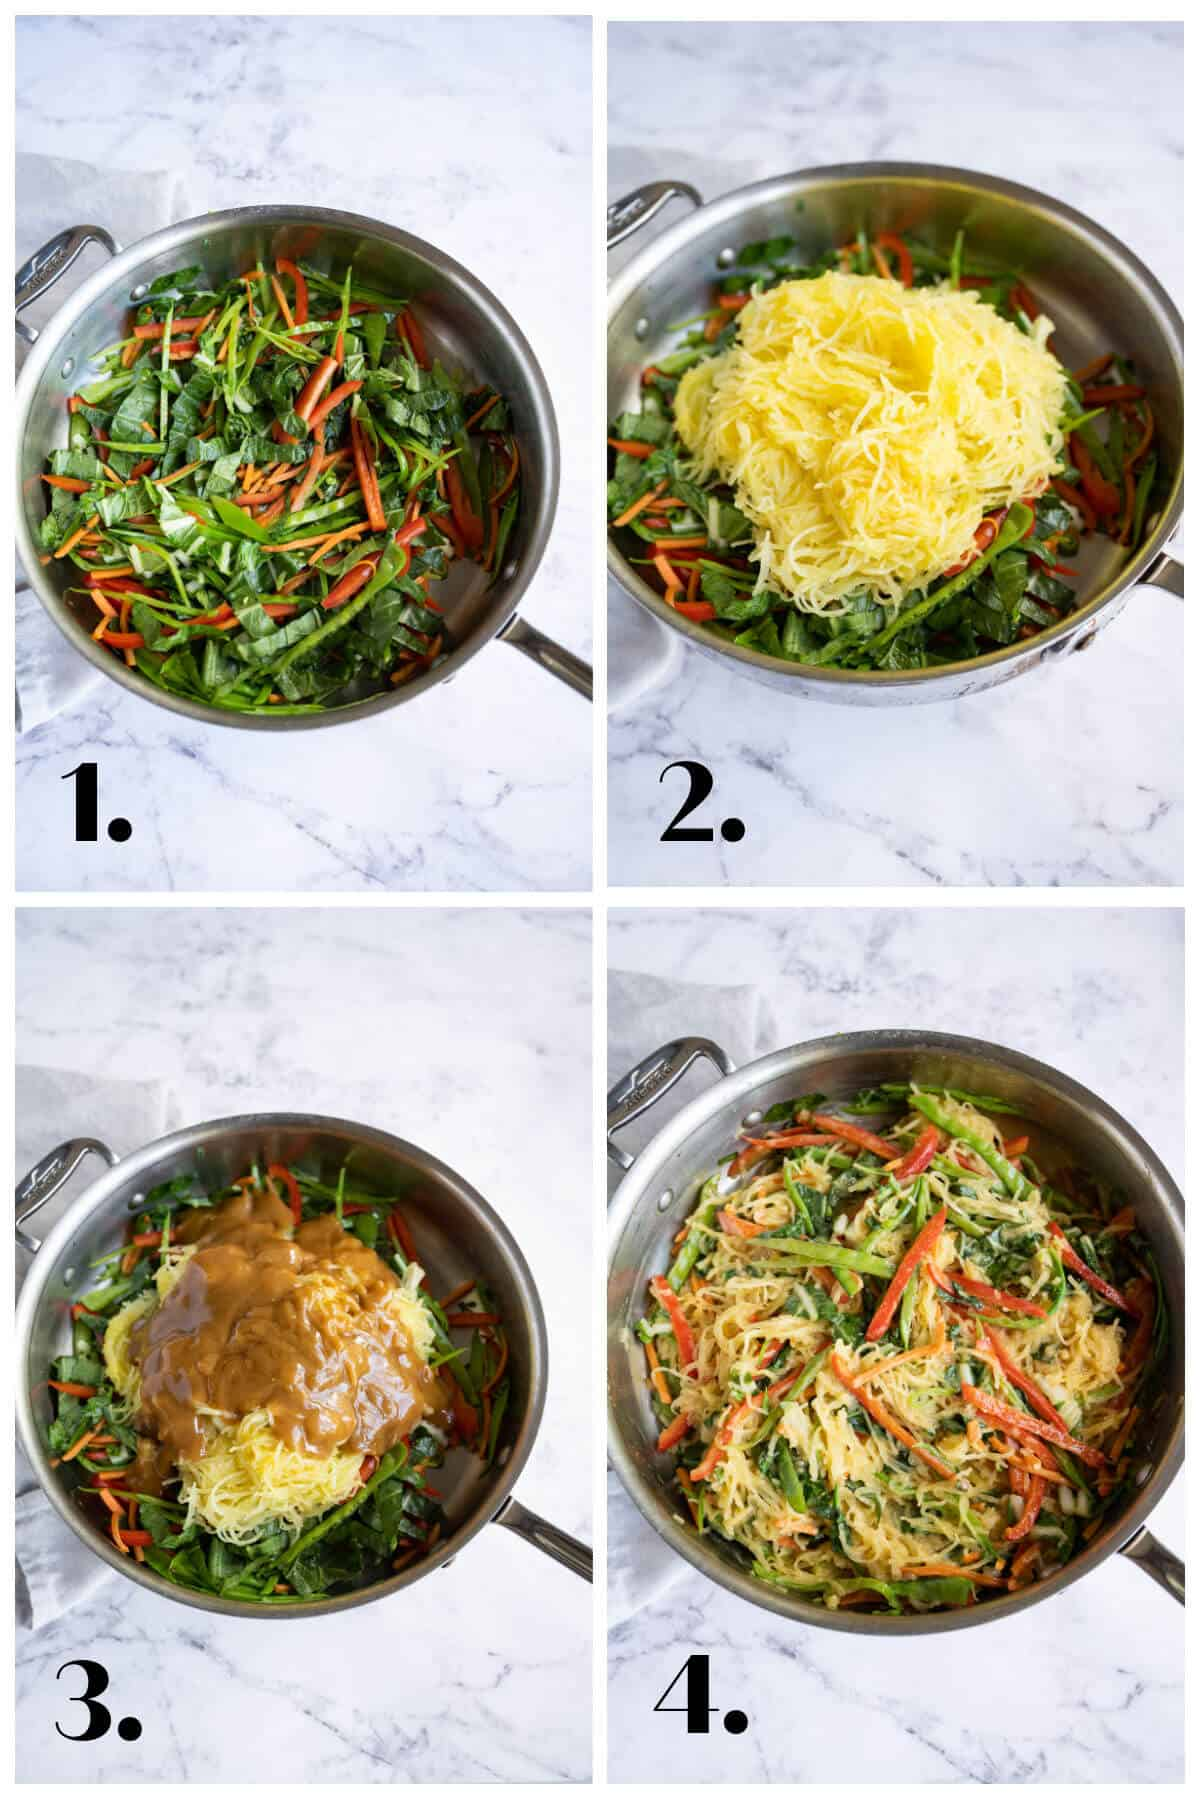 4 picture collage describing the steps to making asian spaghetti squash. 1. saute' vegetables; 2. add spaghetti squash noodles; 3. add sauce; 4. toss to coat.